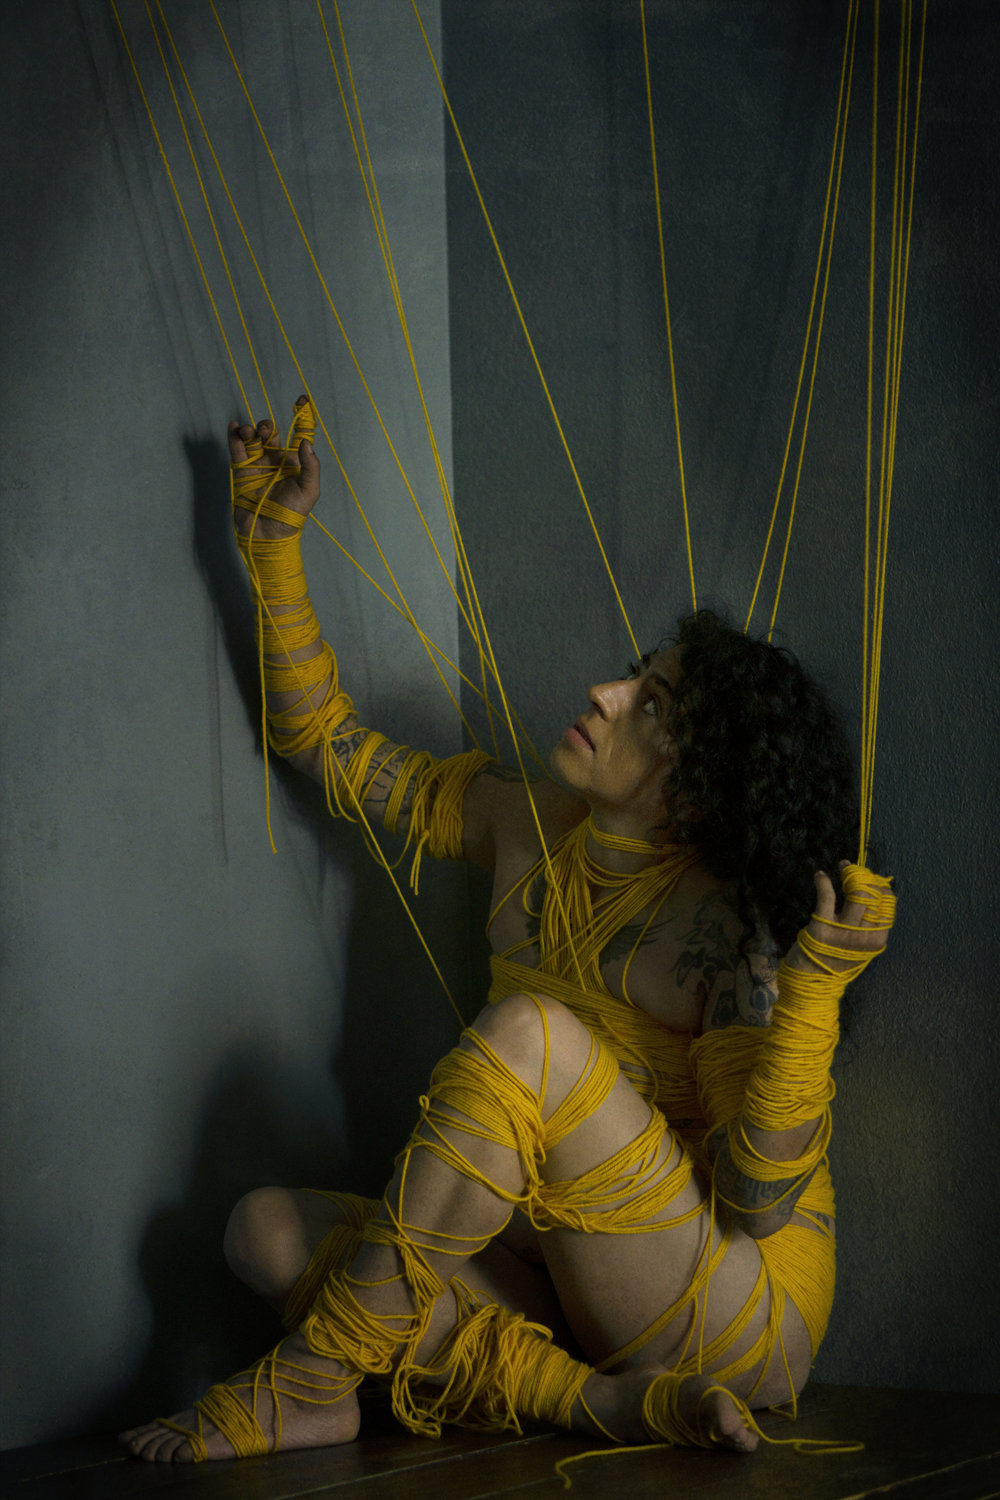 """Wrapped"" by Kathryne Husk  In a cramped greenish-umber space, an long haired ambiguously gendered figure (slightly feminine of center) sits on the ground with one hand against the wall. The figure is wrapped tightly in bright yellow yarn/threads that hang from the top of the frame"